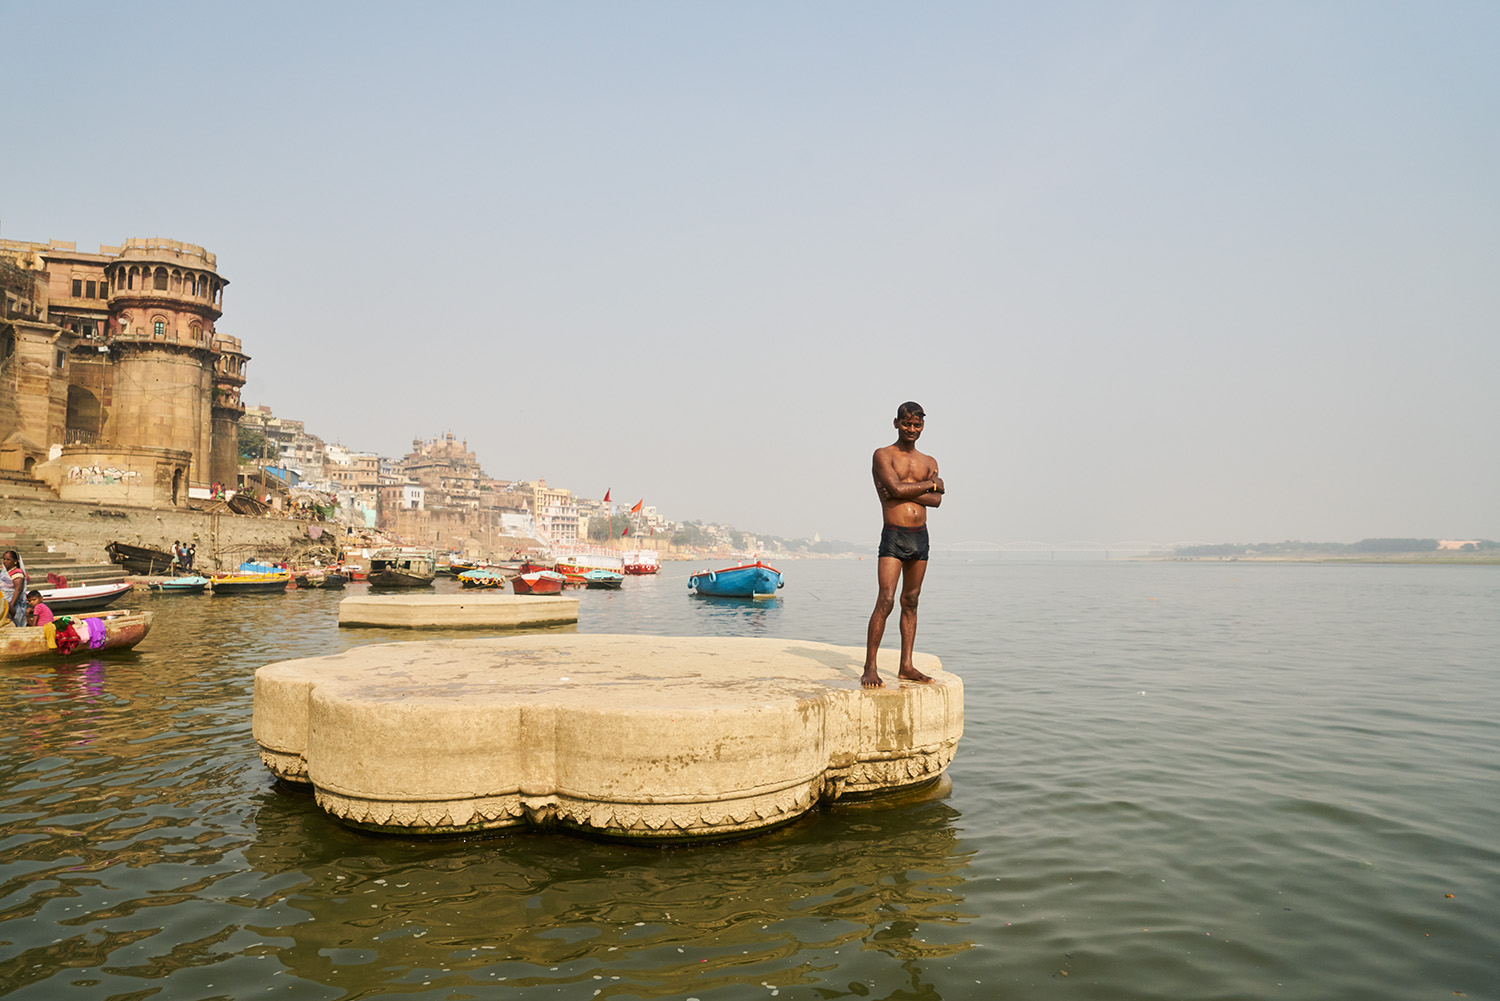 Bathing on the Ganges